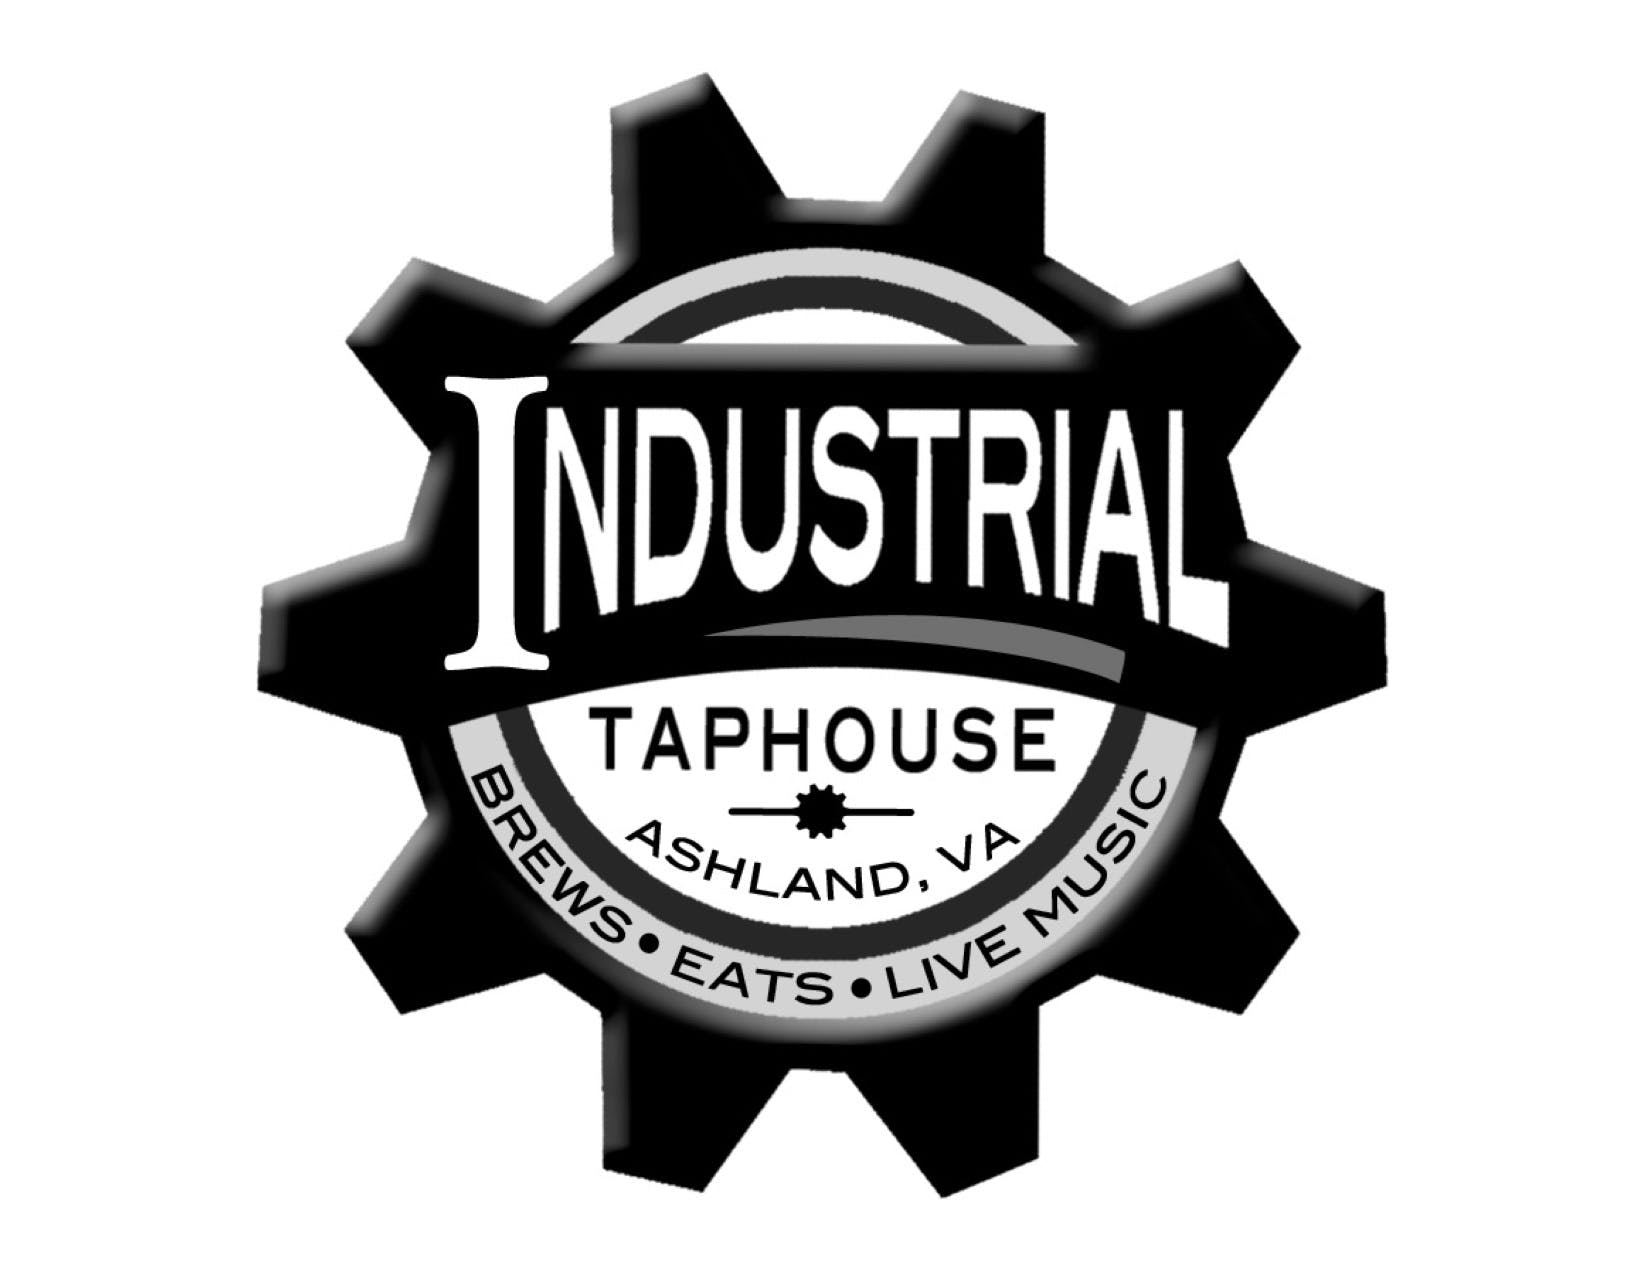 ON TAP – INDUSTRIAL TAPHOUSE